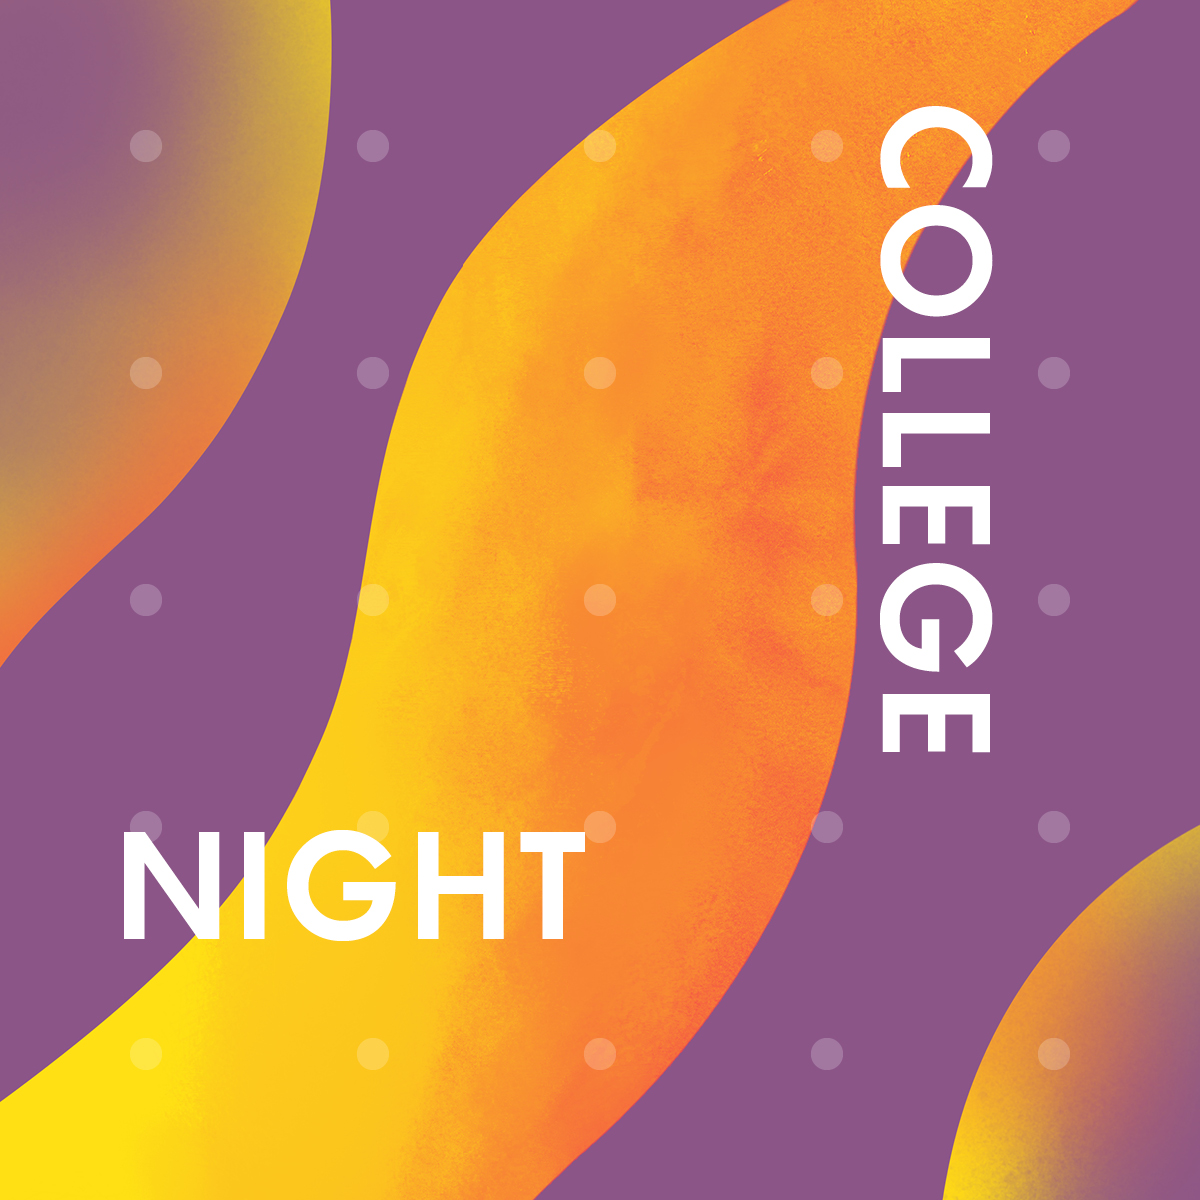 Purple and orange waves announcing college night in white text